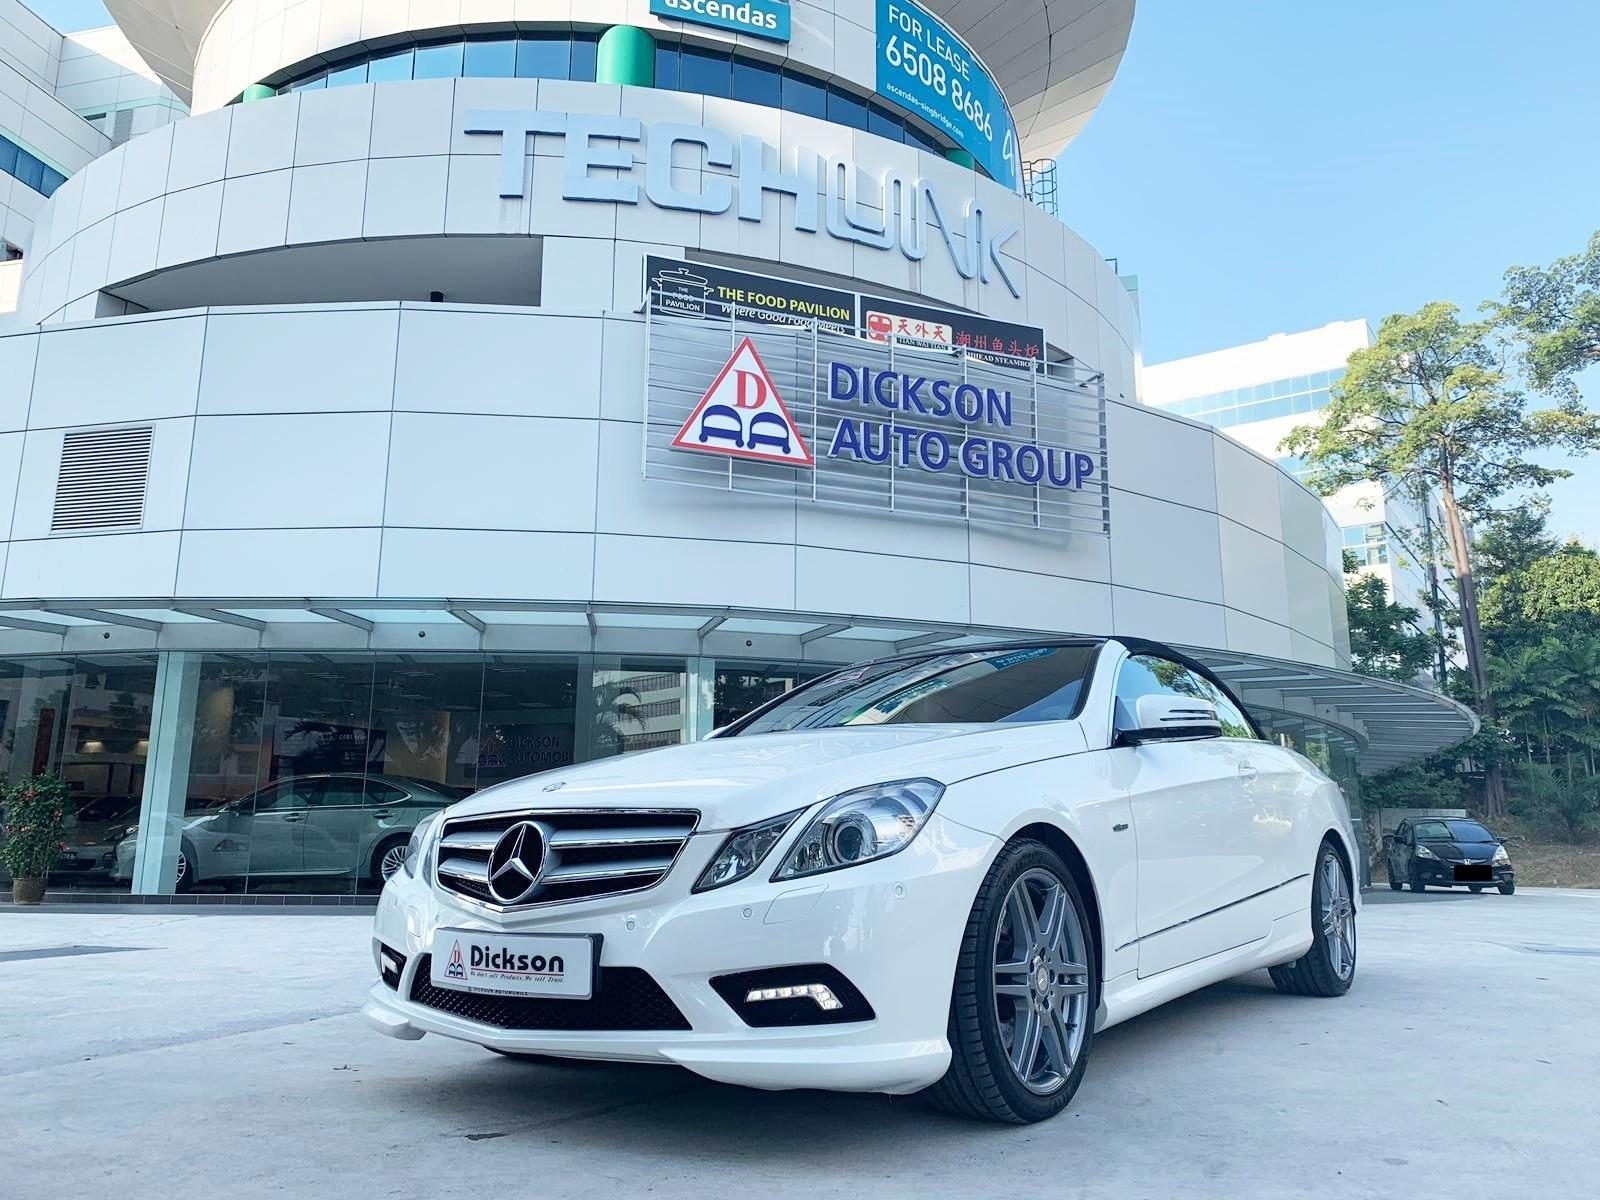 MERCEDES BENZ E 250CGI CONVERTIBLE (New 10 years COE)